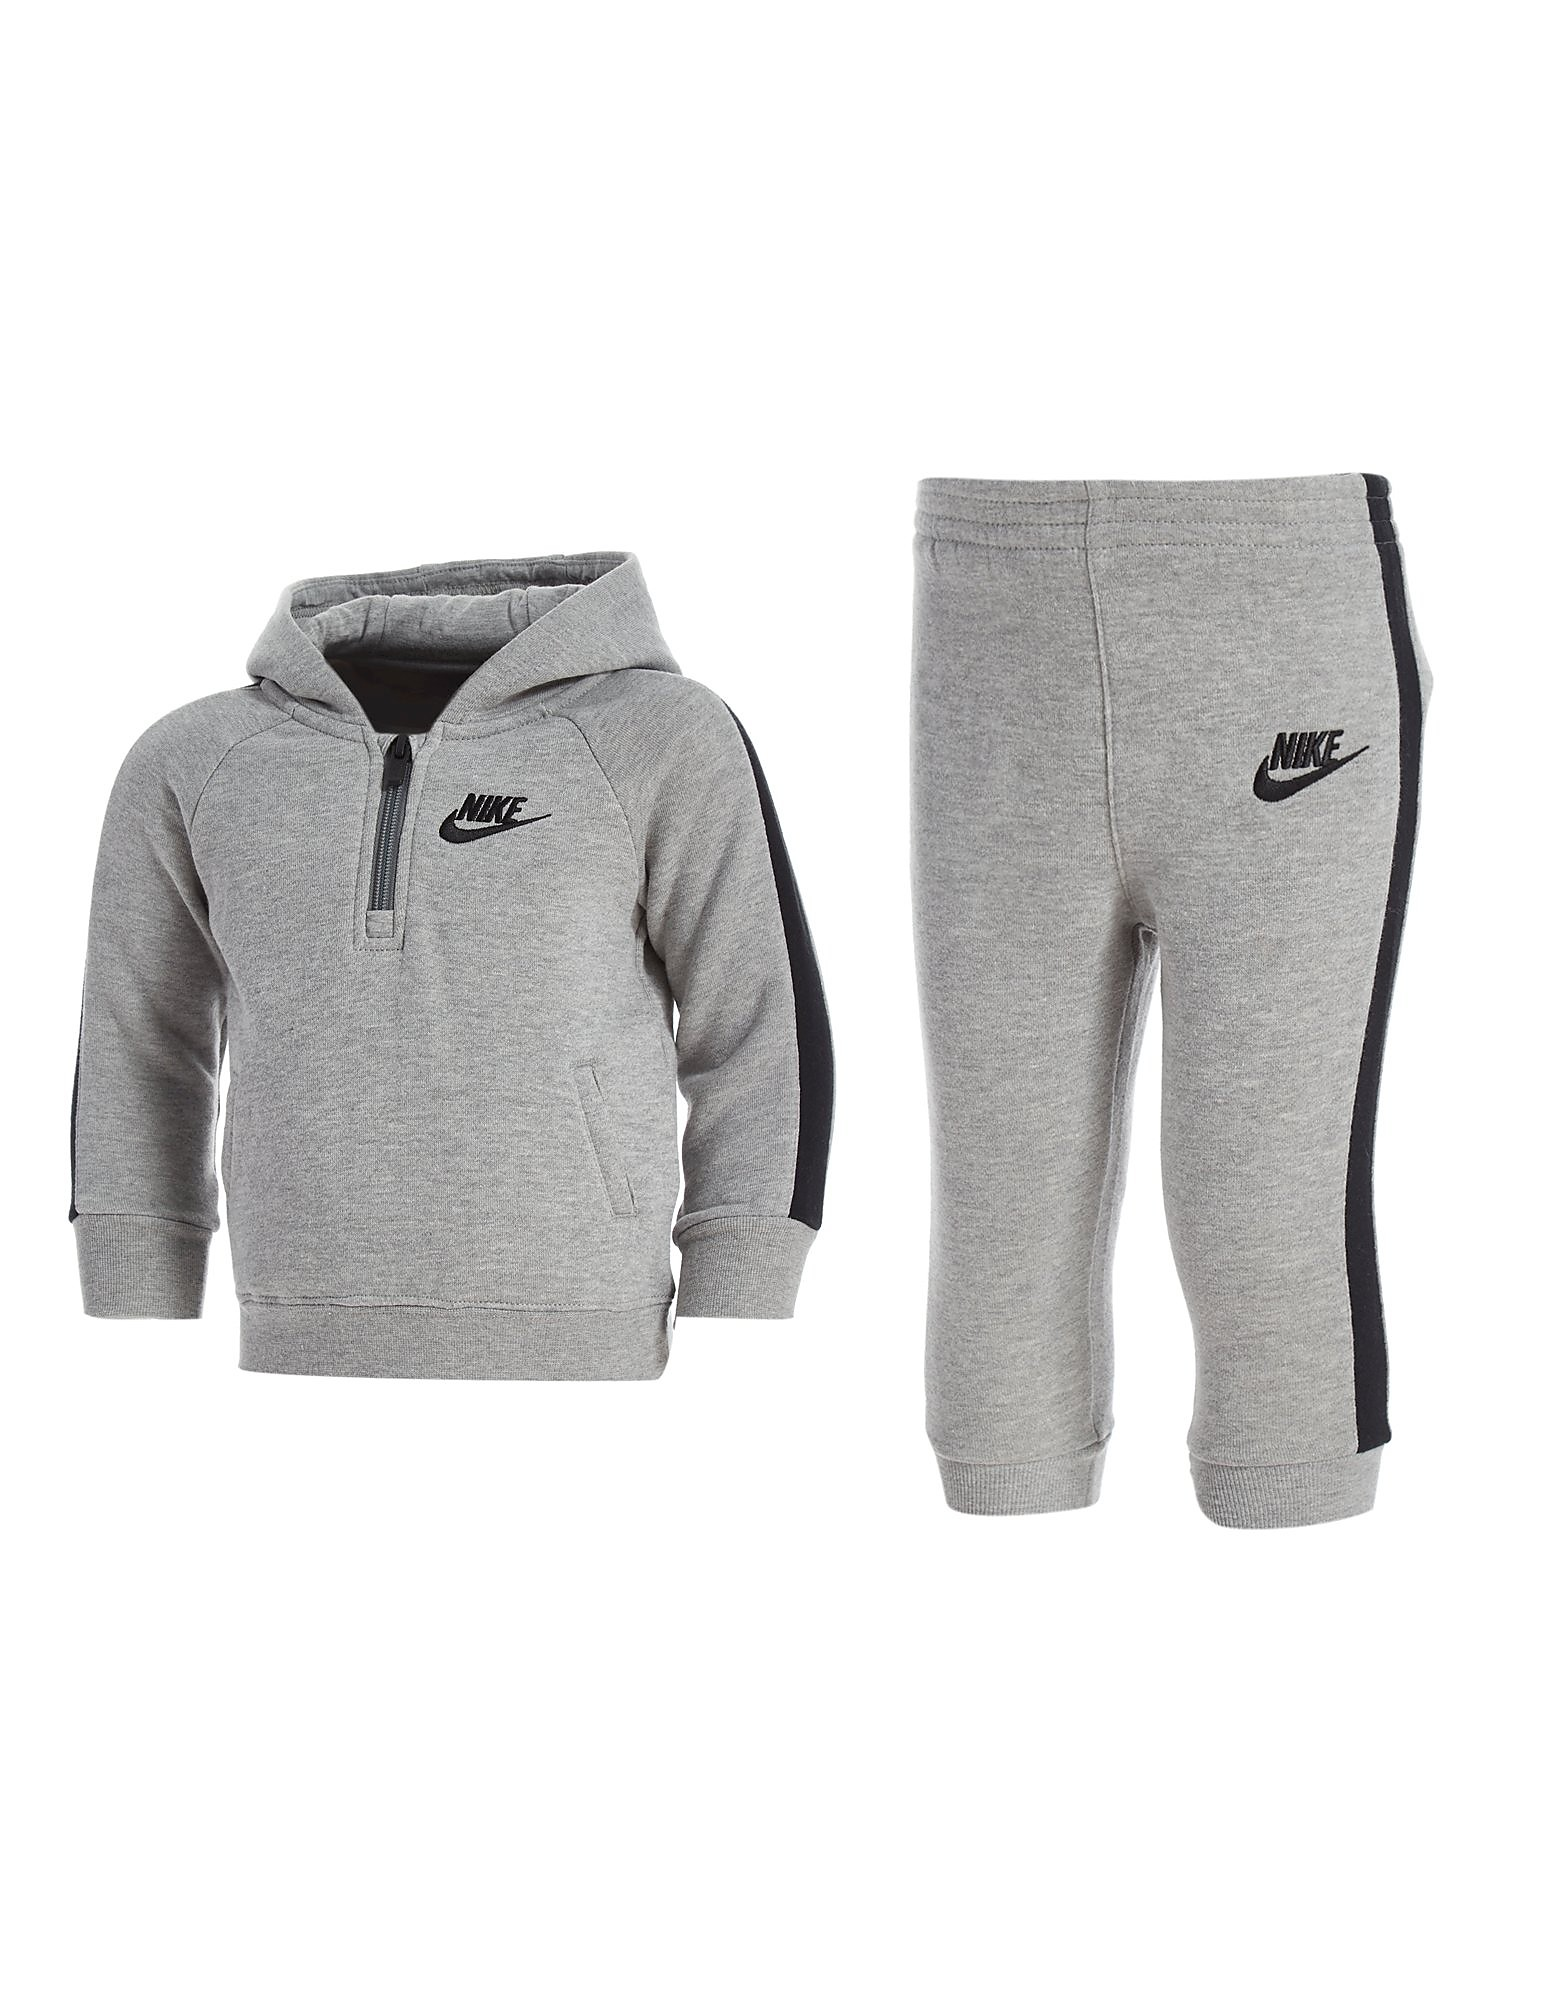 Nike Futura 1/4 Zip Suit Infant